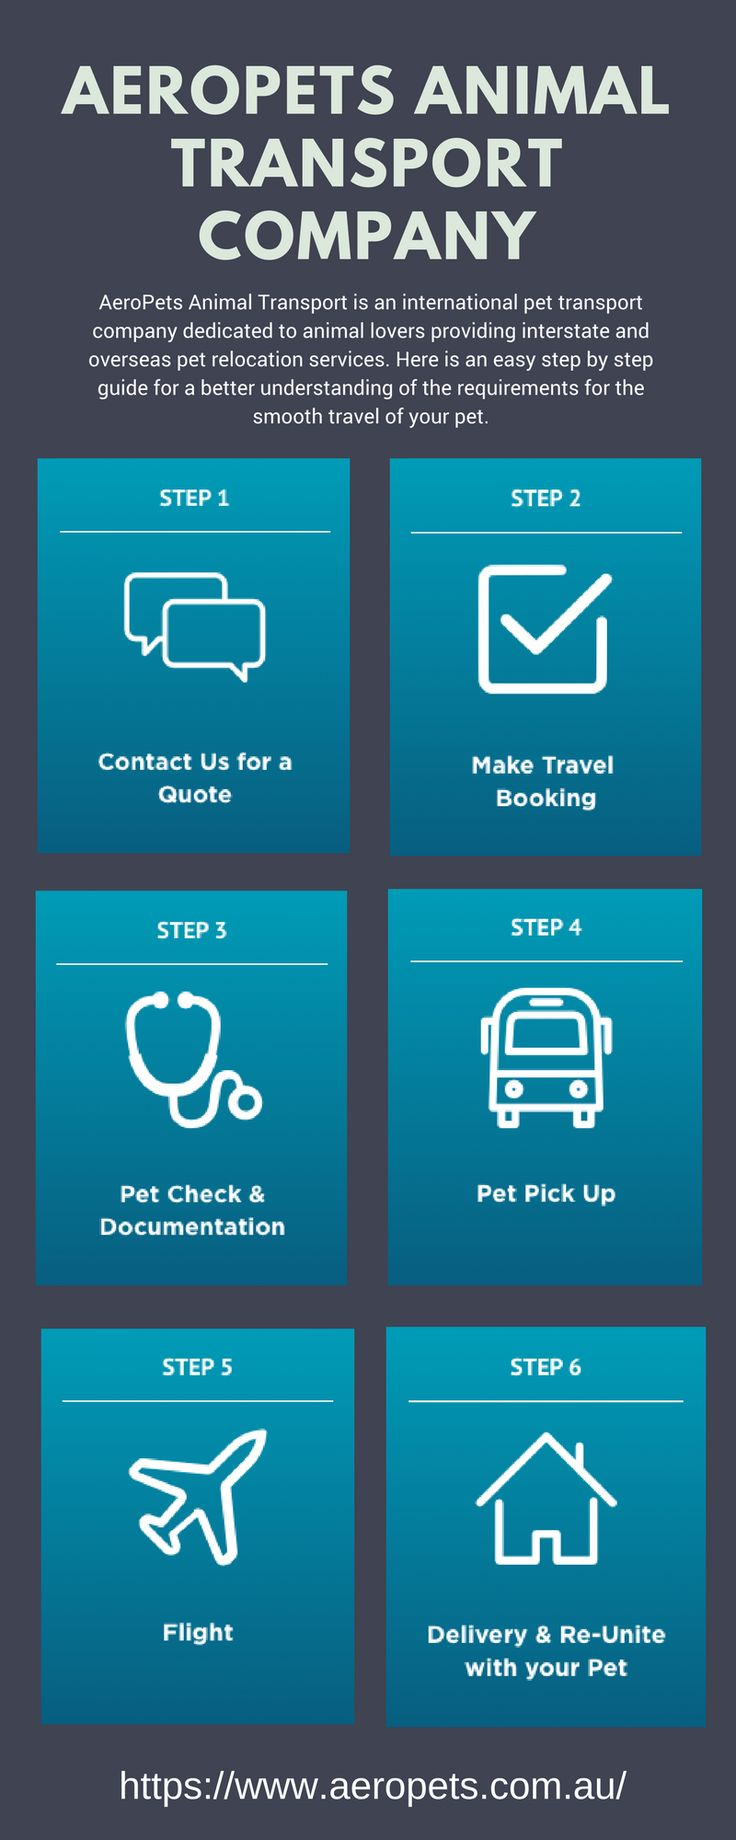 Aeropets  Animals Transport Company  Aeropets  Animals Transport is an international pet transport company dedicated to animal lovers providing interstate and overseas pet relocation services. This infographic shows the step by step guide for a better understanding of the requirements for the smooth travel of your pet.